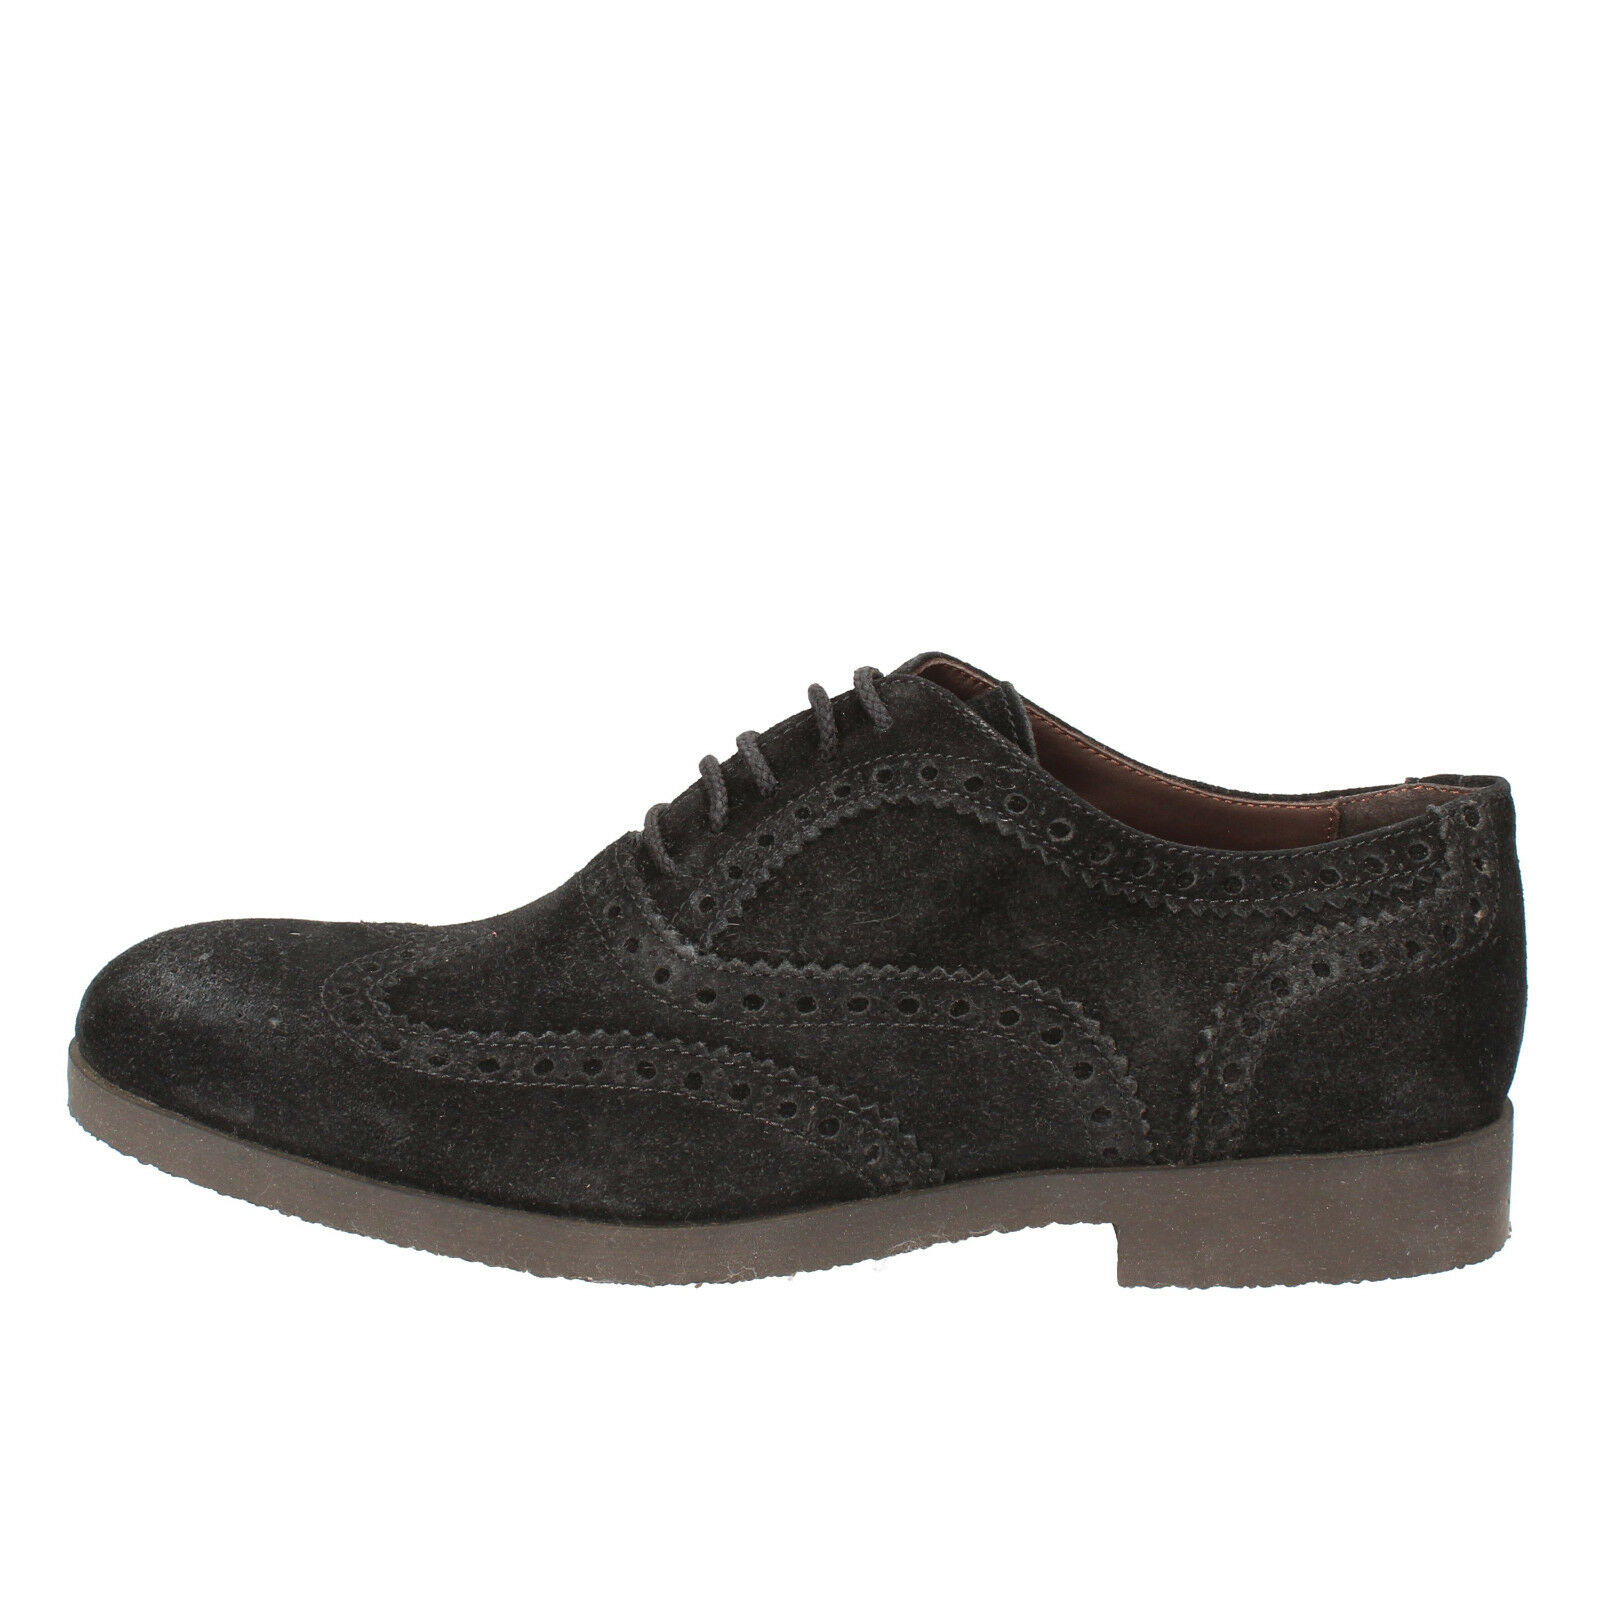 mens shoes TODAY BY CALPIERRE 8,5 () elegant blue suede AD538-B